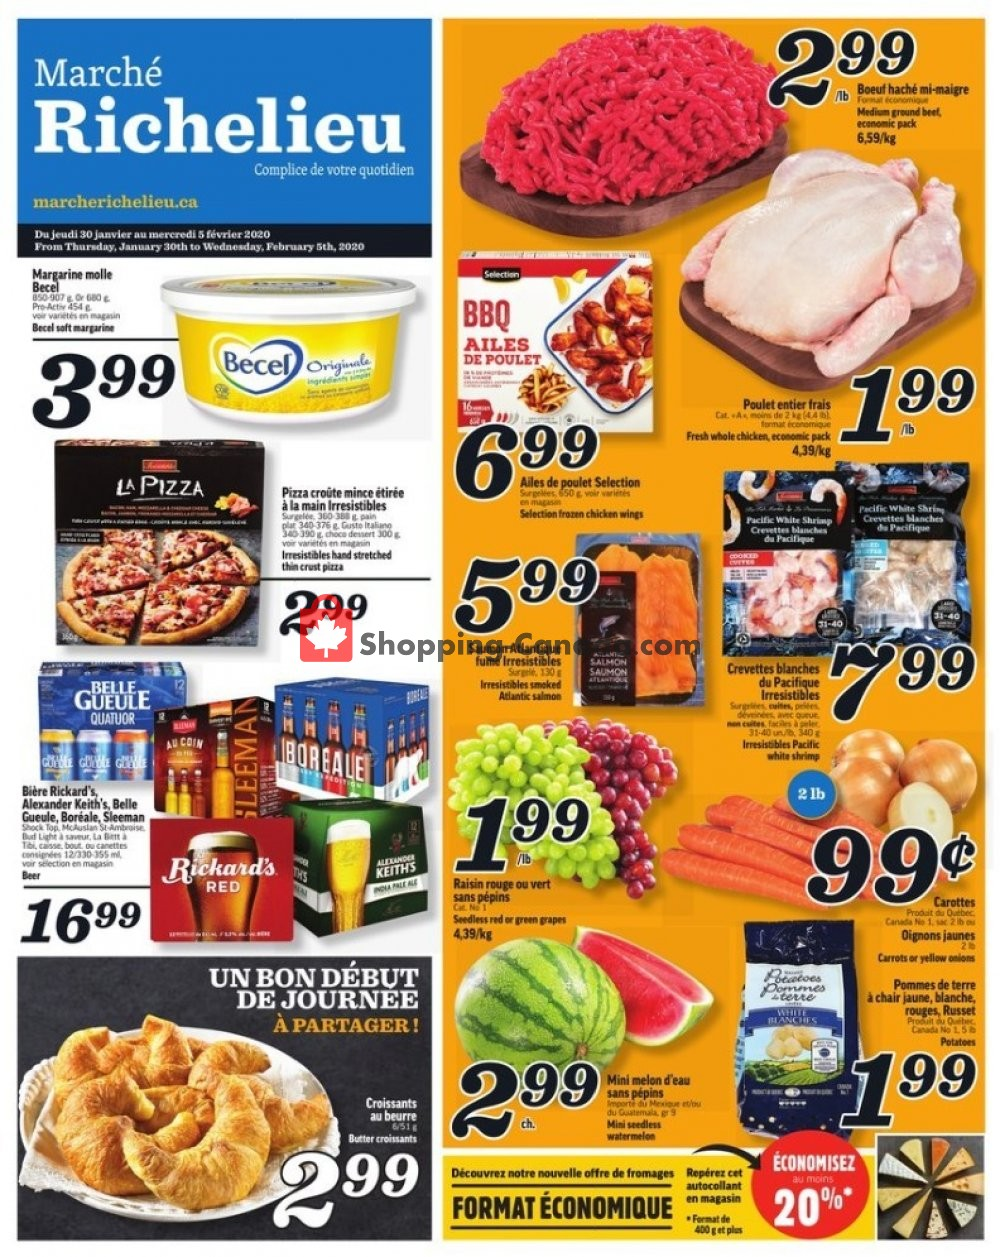 Flyer Marche Richelieu Canada - from Thursday January 30, 2020 to Wednesday February 5, 2020